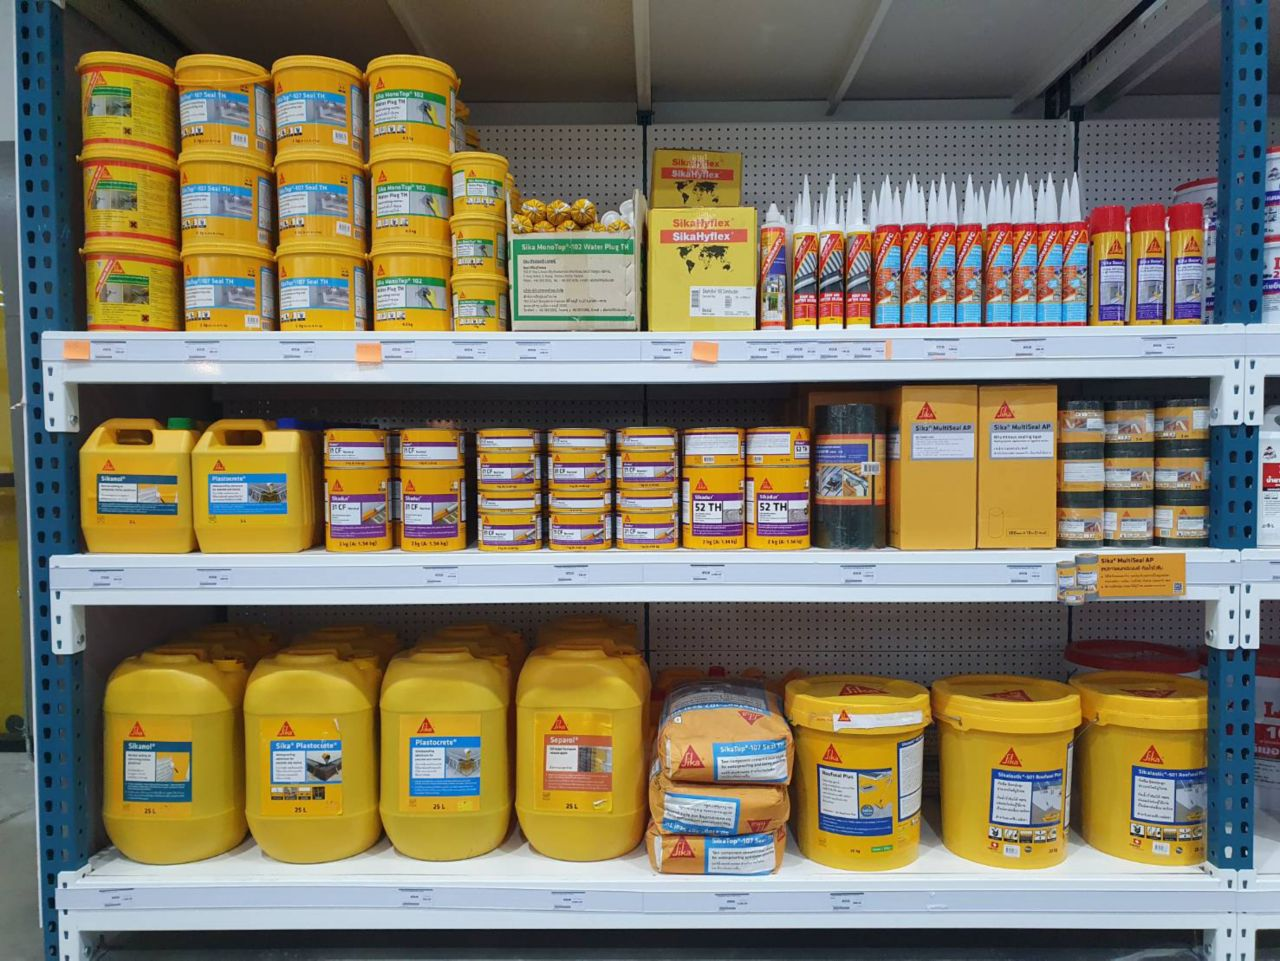 Sika products shelf at we home